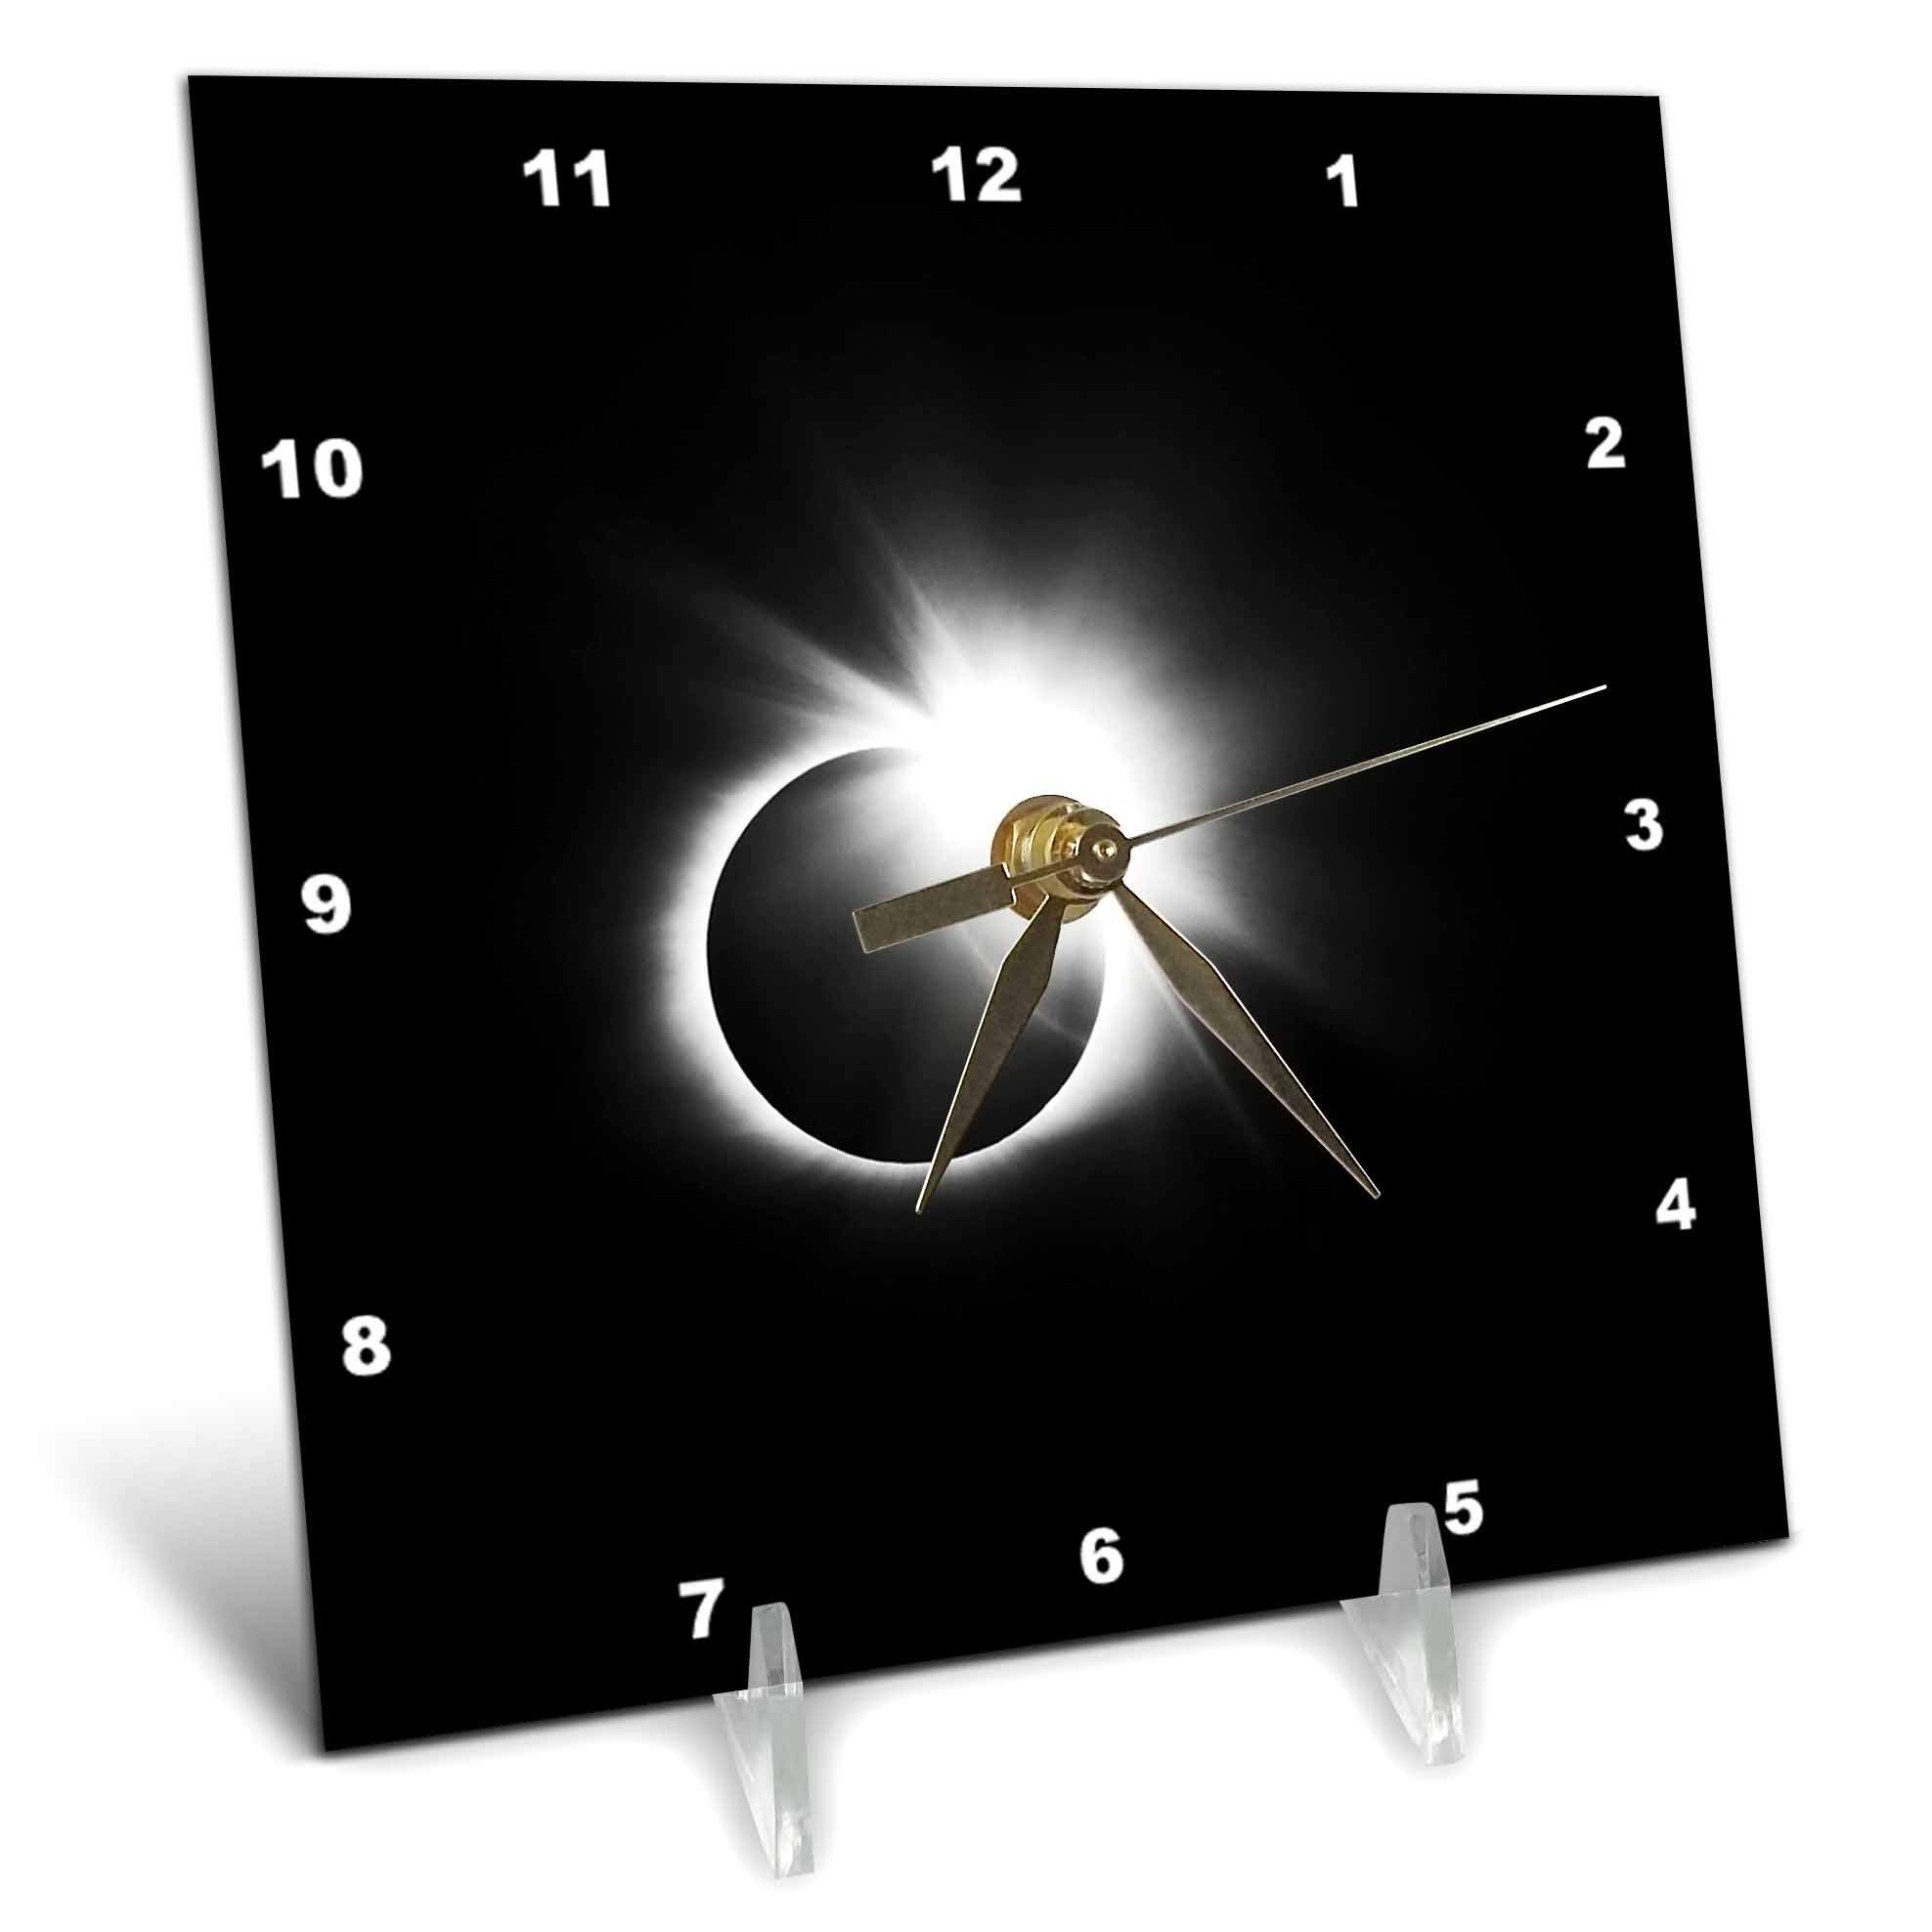 3dRose Stamp City - Astronomy - Photograph of The 2017 Solar Eclipse. Capture of The Diamond Ring. - 6x6 Desk Clock (dc_290787_1)